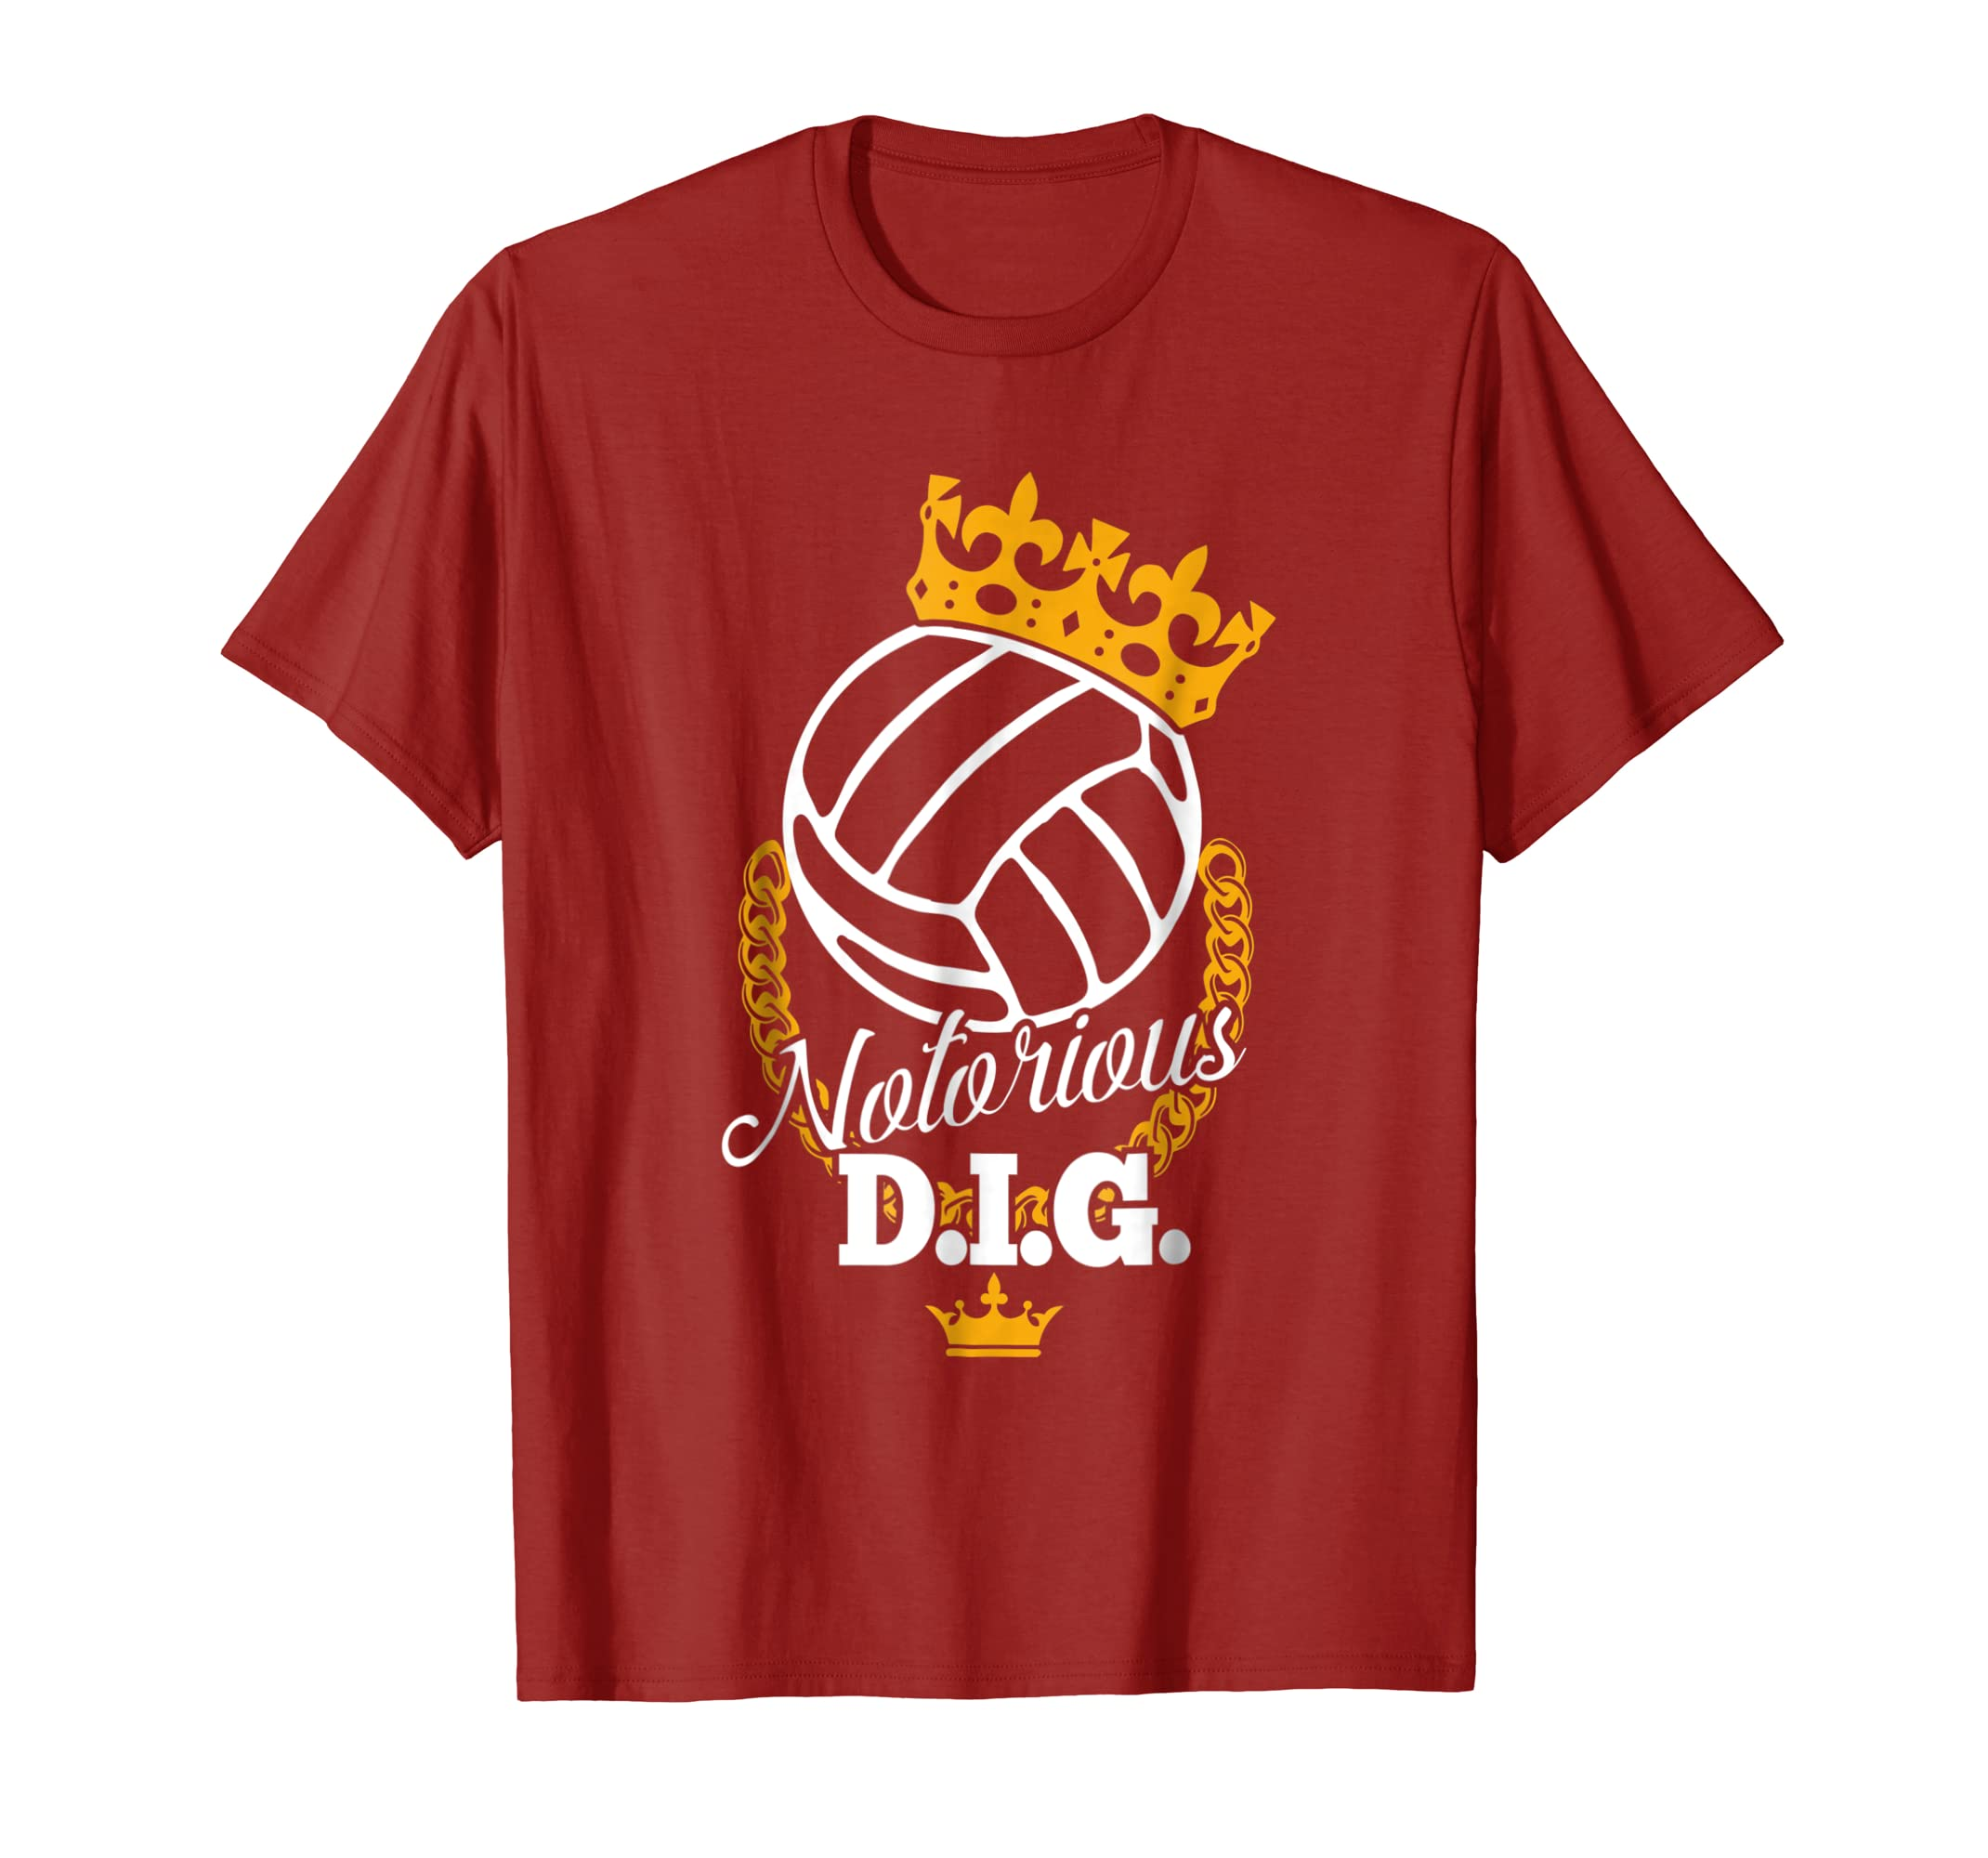 2c054f4111 Amazon.com: Funny Vollyball Team T-Shirt - Notorious DIG Crown Pun Tees:  Clothing